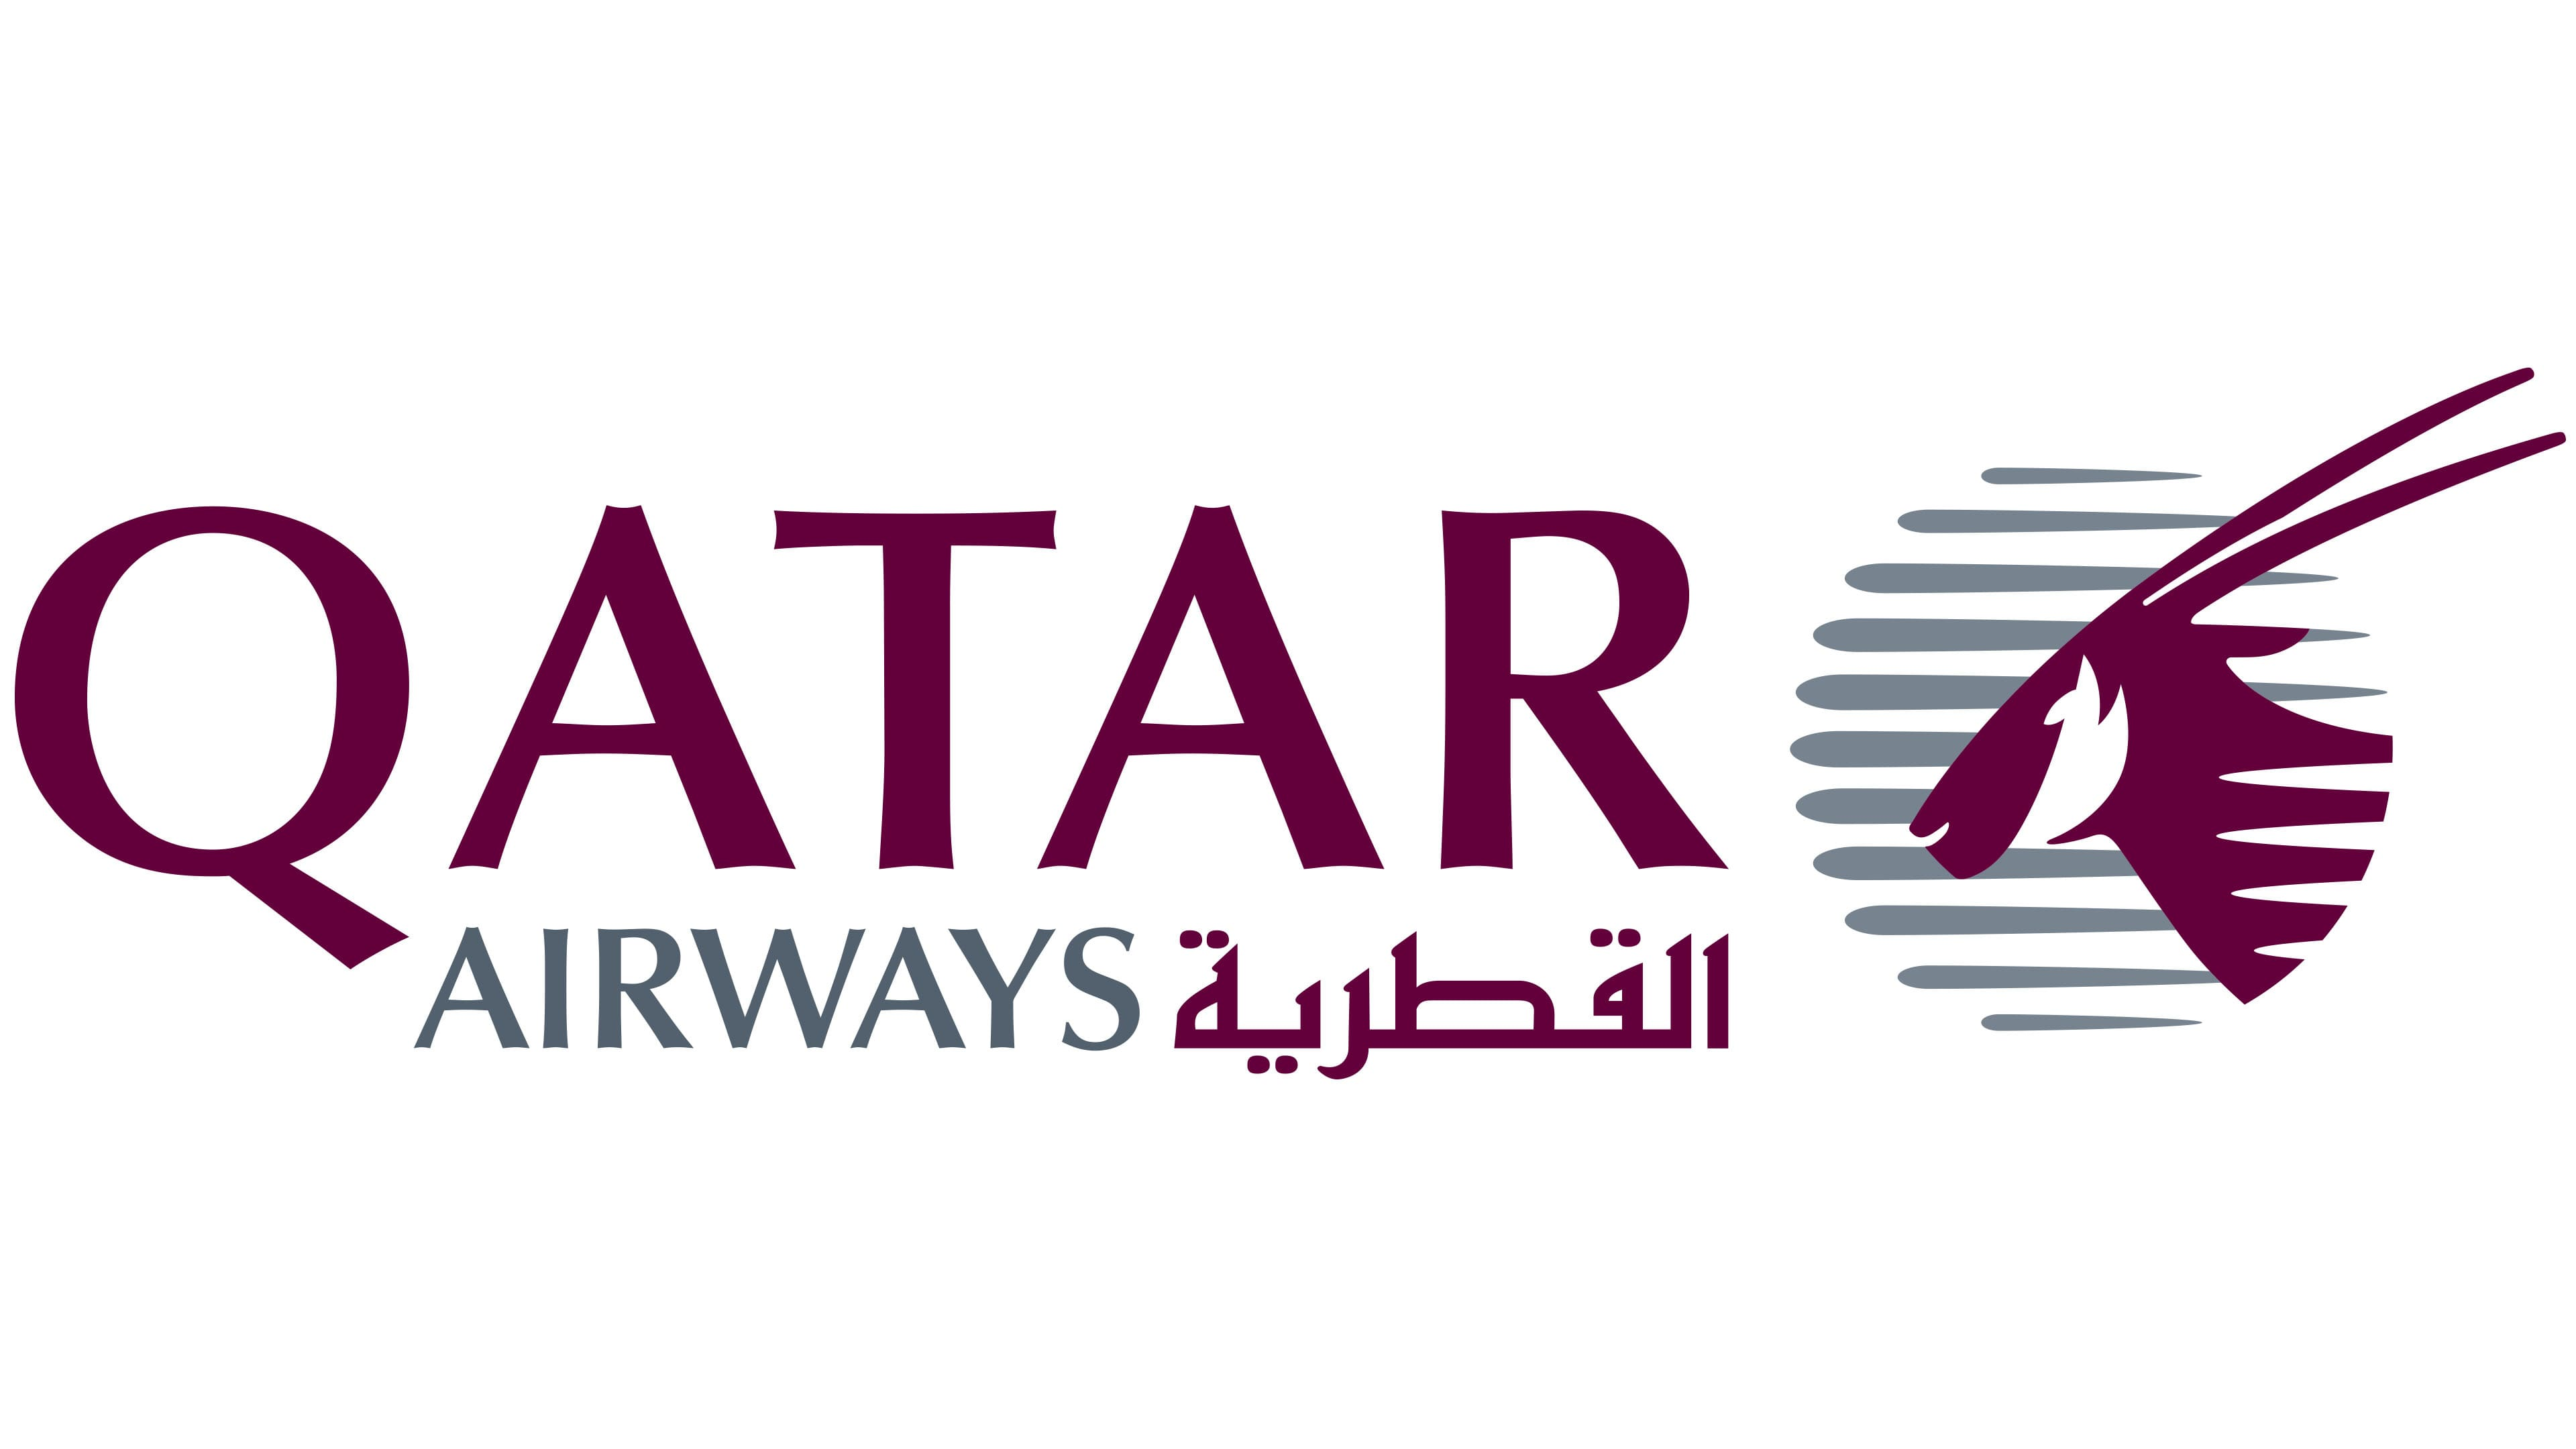 Qatar Airways Logo | The most famous brands and company logos in the world